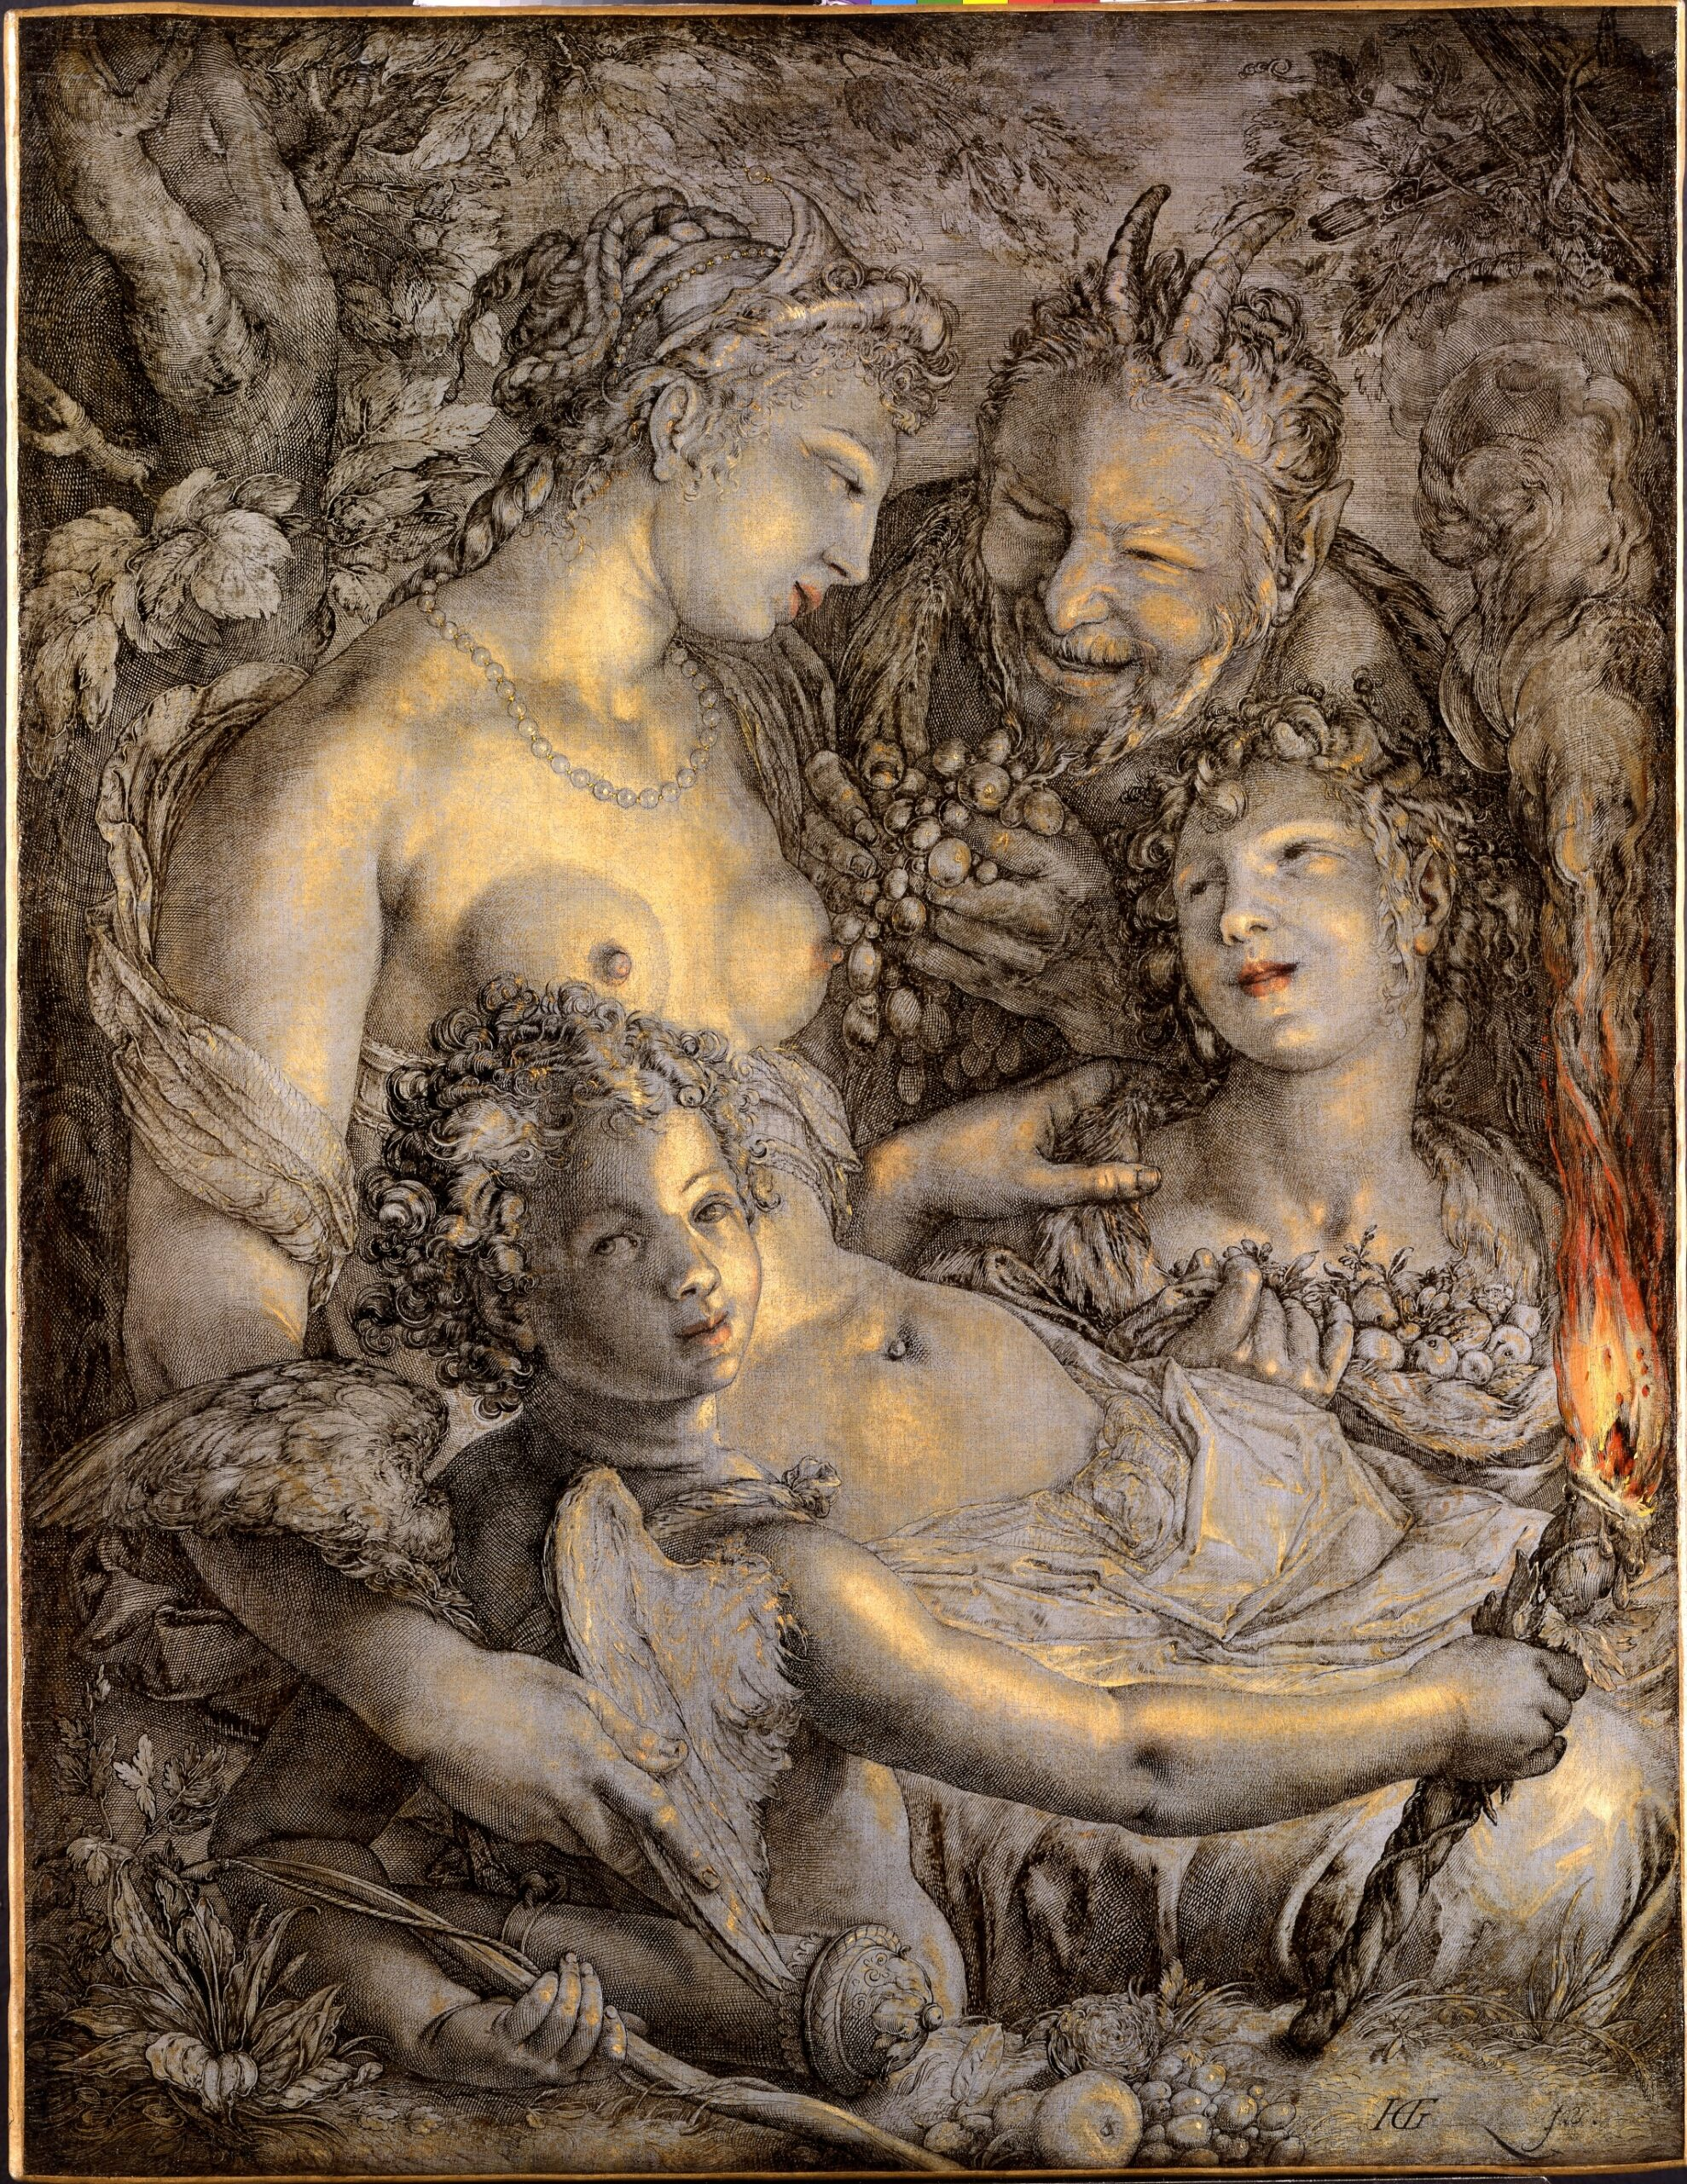 Hendrick Goltzius (1558 – 1617), Sine Cerere et Libero friget Venus (Without Ceres and Bacchus Venus Would Freeze), ca. 1600–1603Philadelphia Museum of Art, Philadelphia (purchased with the Mr. and Mrs. Walter H. Annenberg Fund for Major Acquisitions, the Henry P. McIlhenny Fund in memory of Frances P. McIlhenny, bequest [by exchange] of Mr. and Mrs. Herbert C. Morris, and gift [by exchange] of Frank and Alice Osborn, 1990)